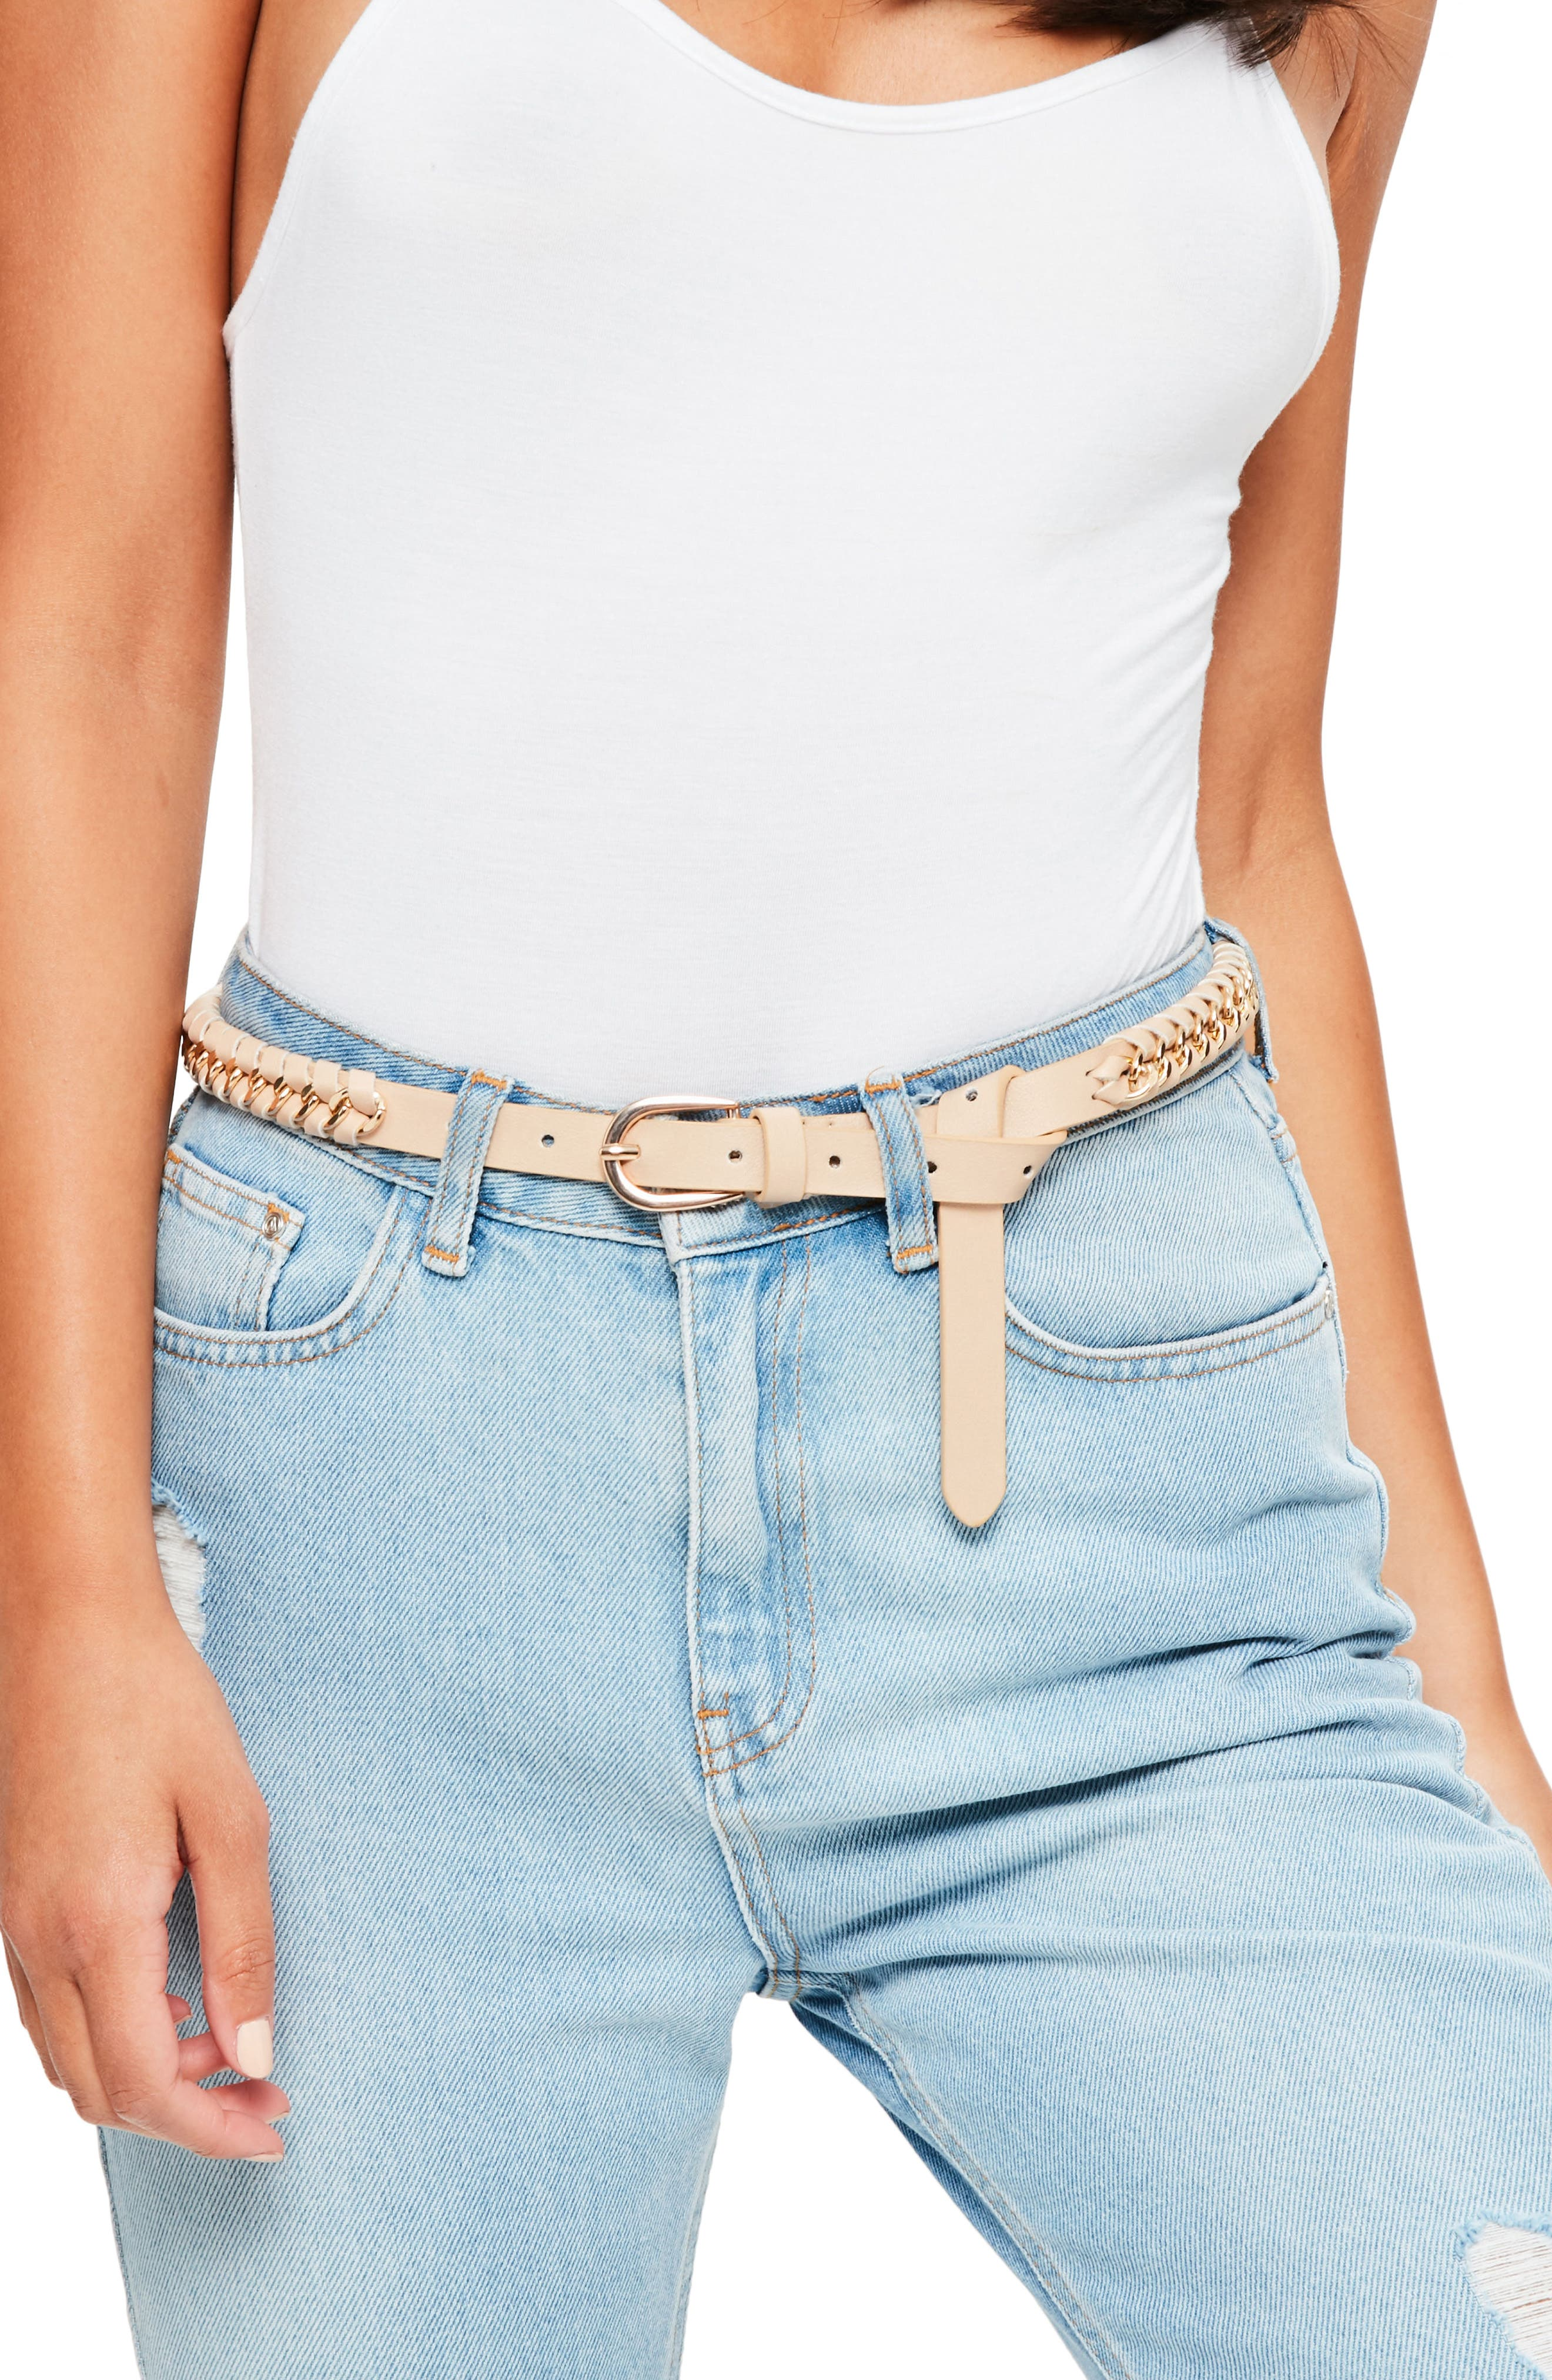 Alternate Image 1 Selected - Missguided Woven Faux Leather & Chain Belt